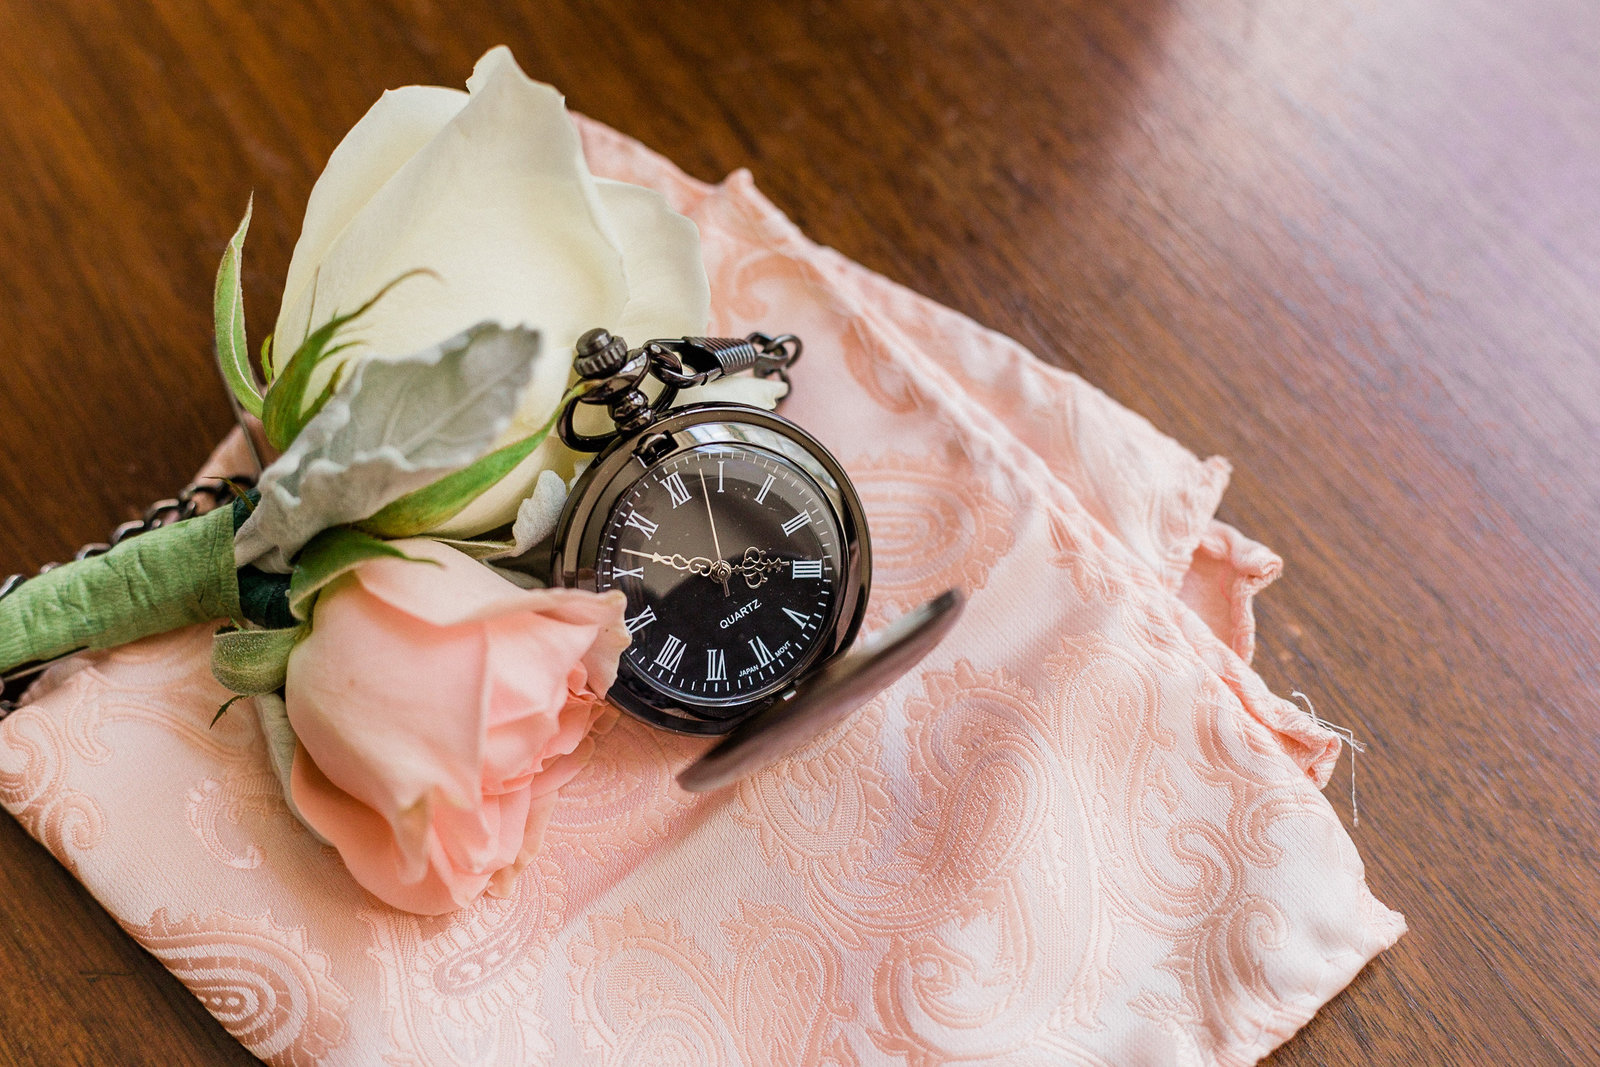 Pink and white rose boutonniere , pocket watch and pink pocket square